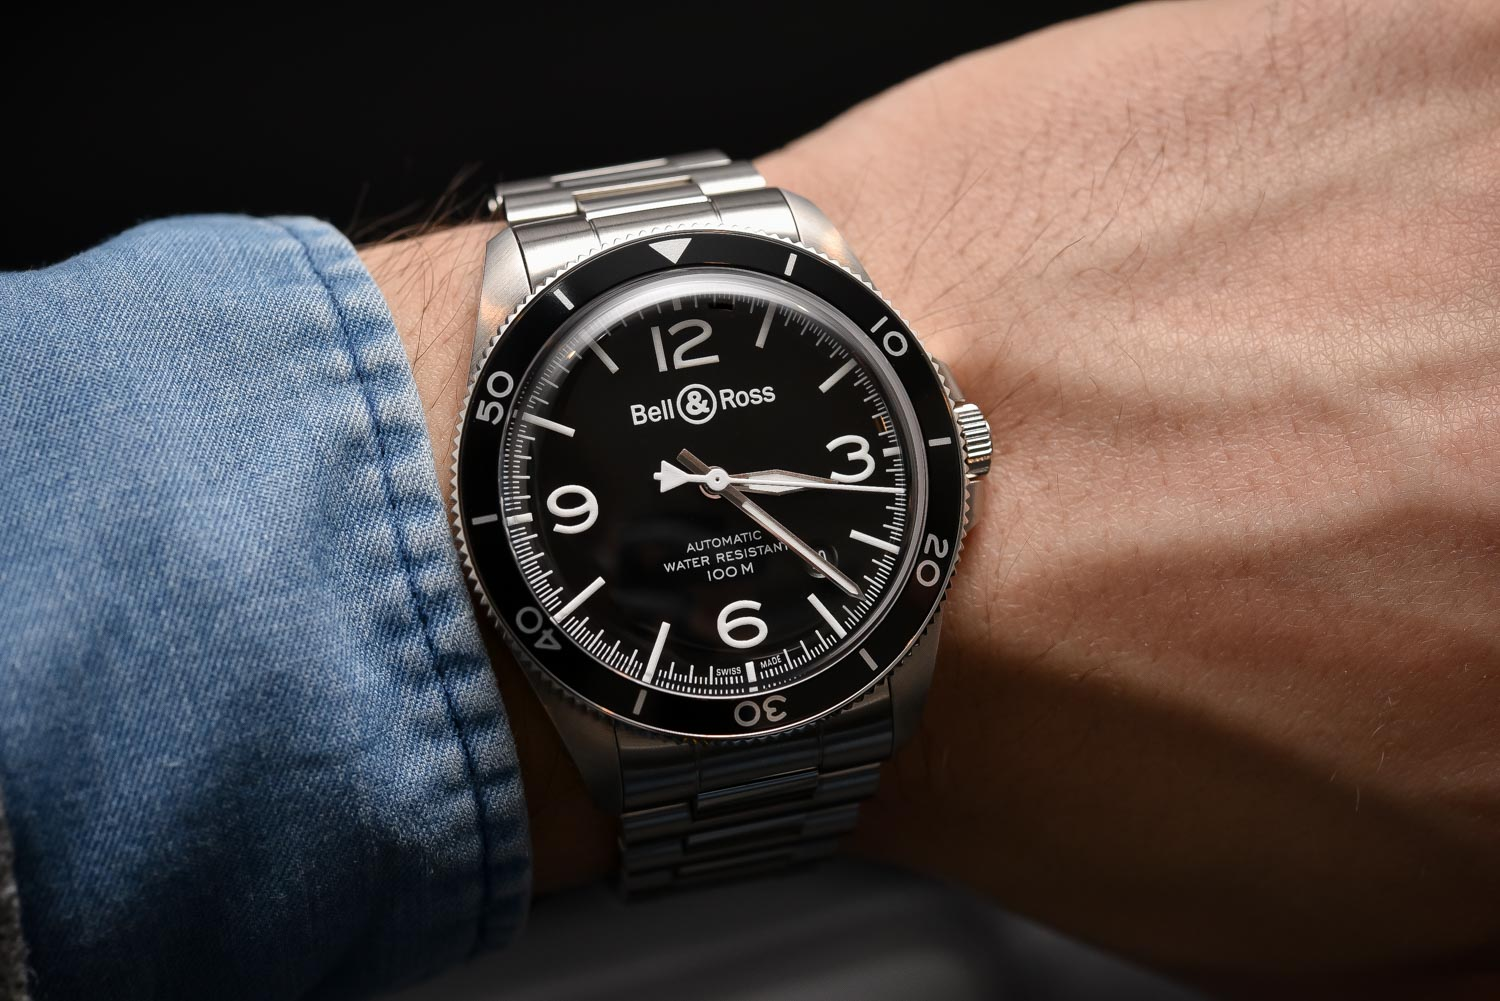 Bell & Ross Vintage Collection 2017